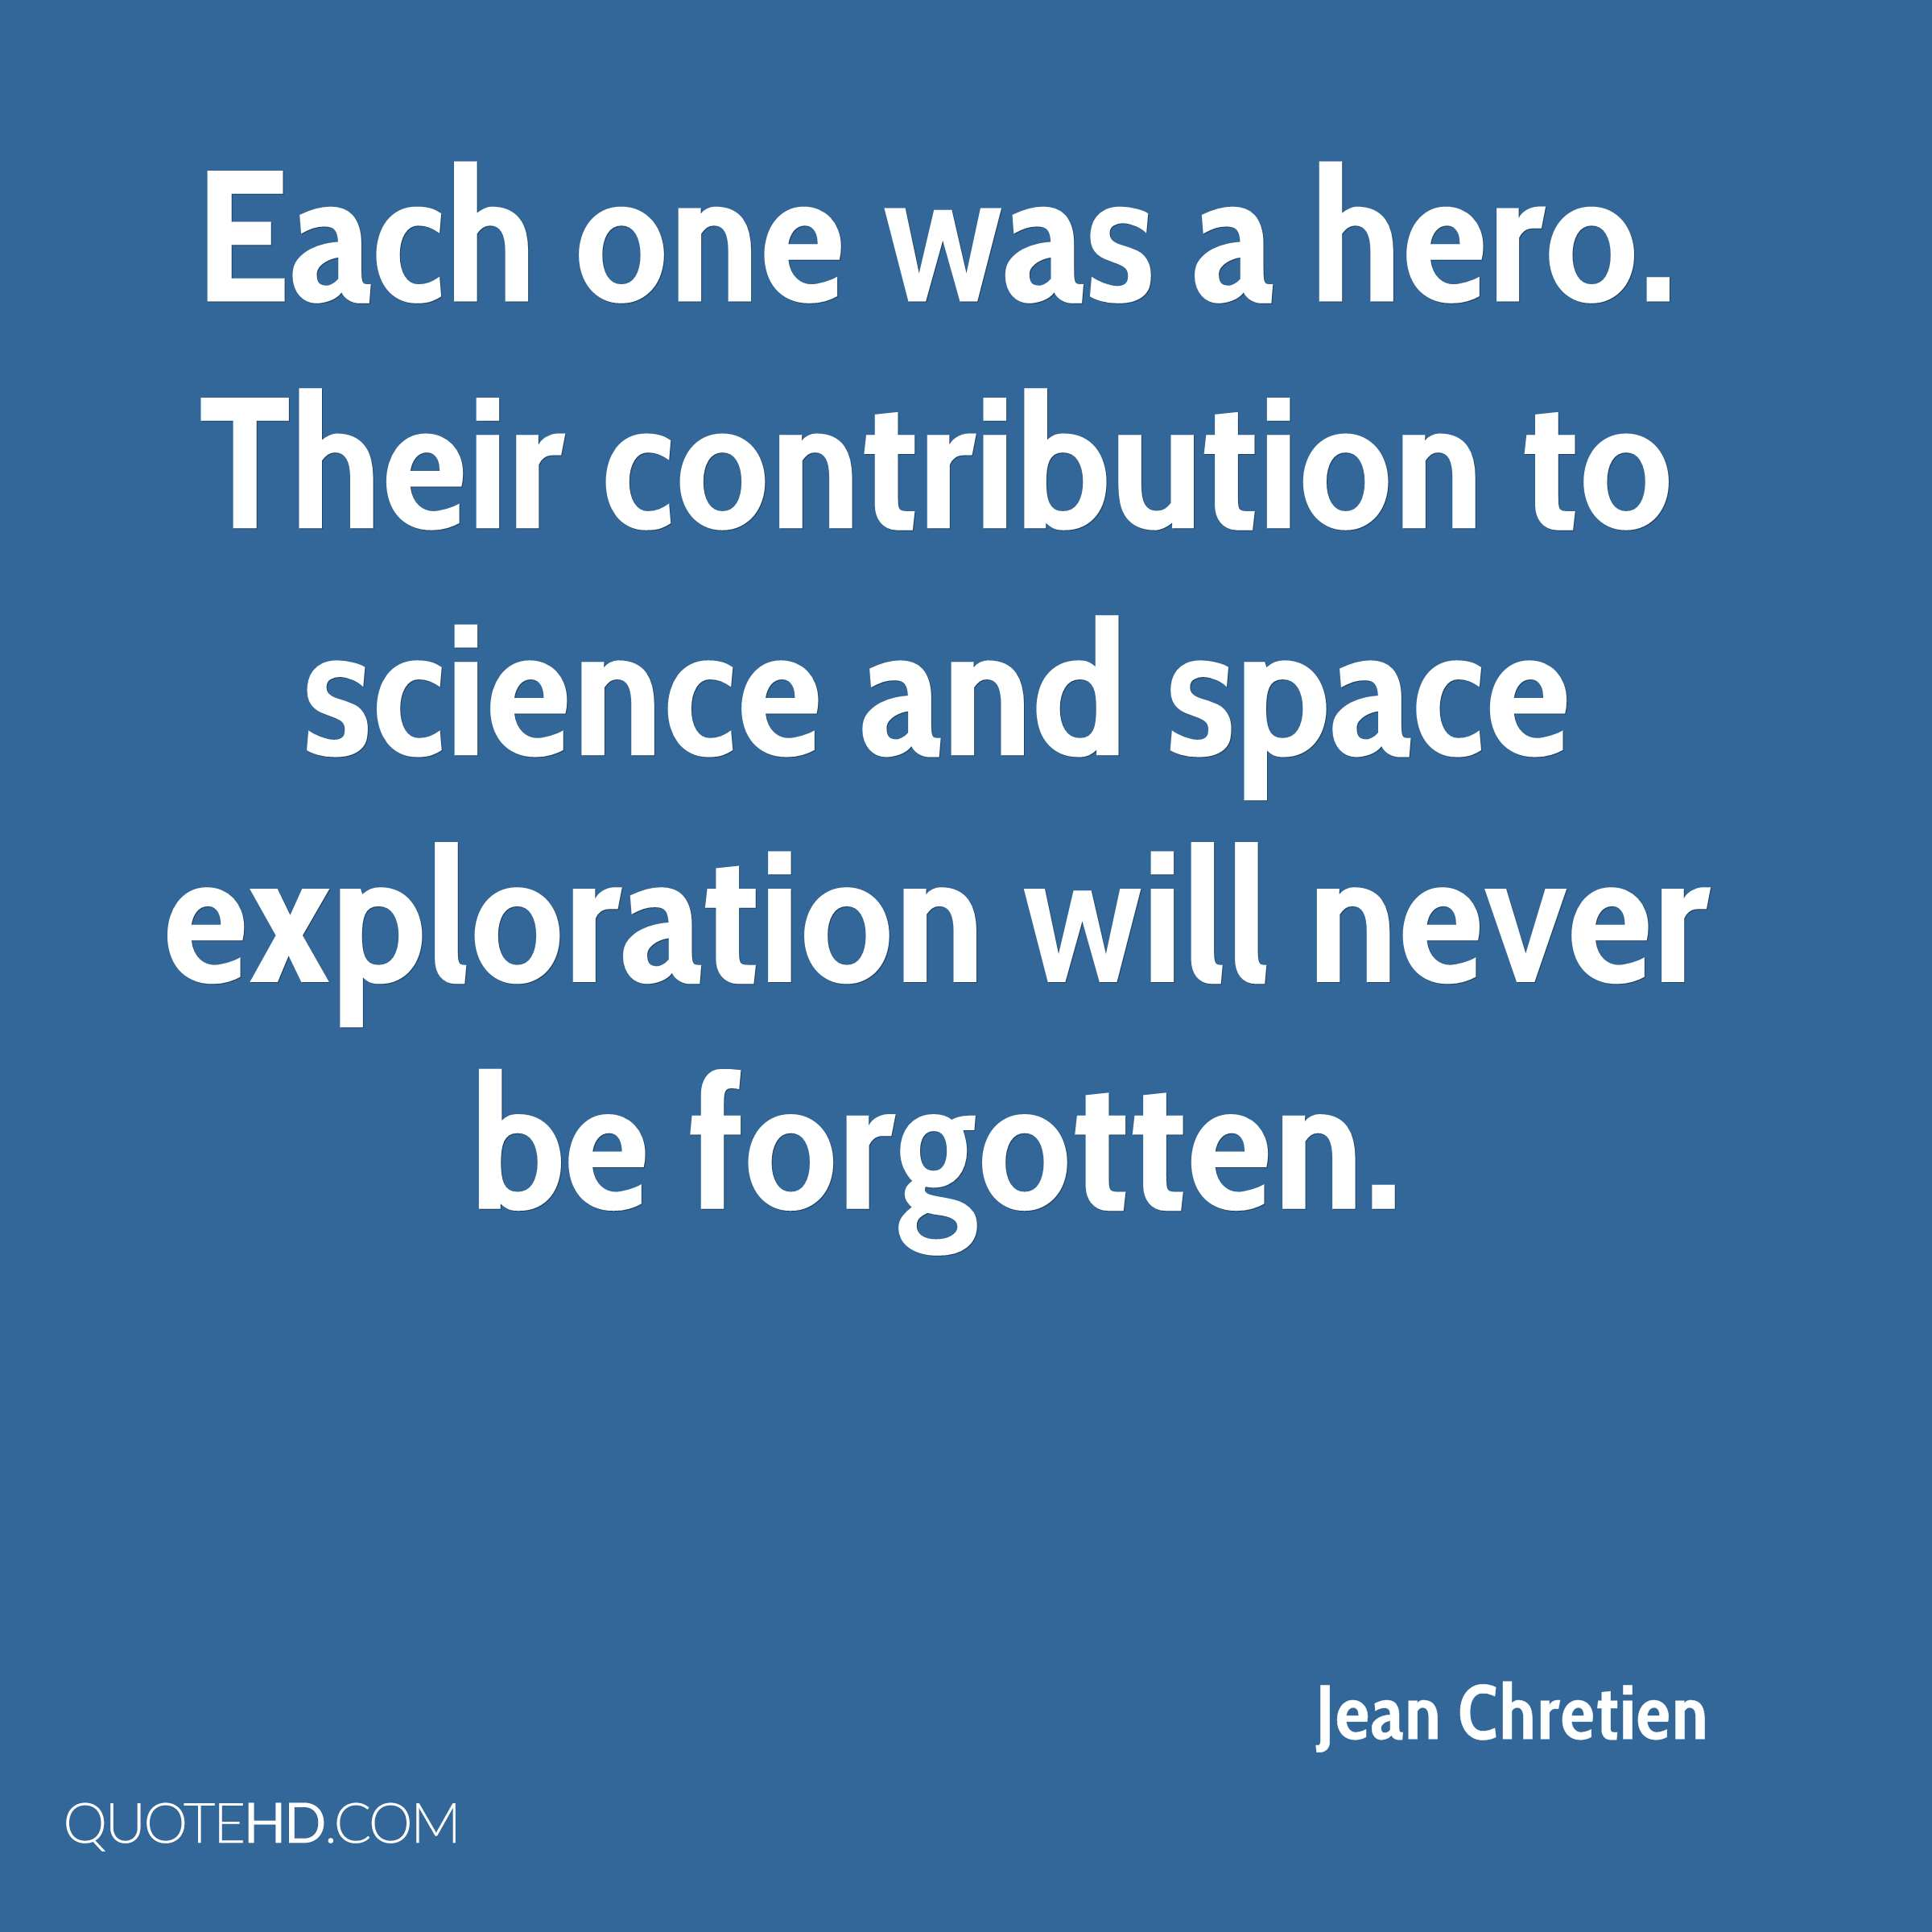 Each one was a hero. Their contribution to science and space exploration will never be forgotten.